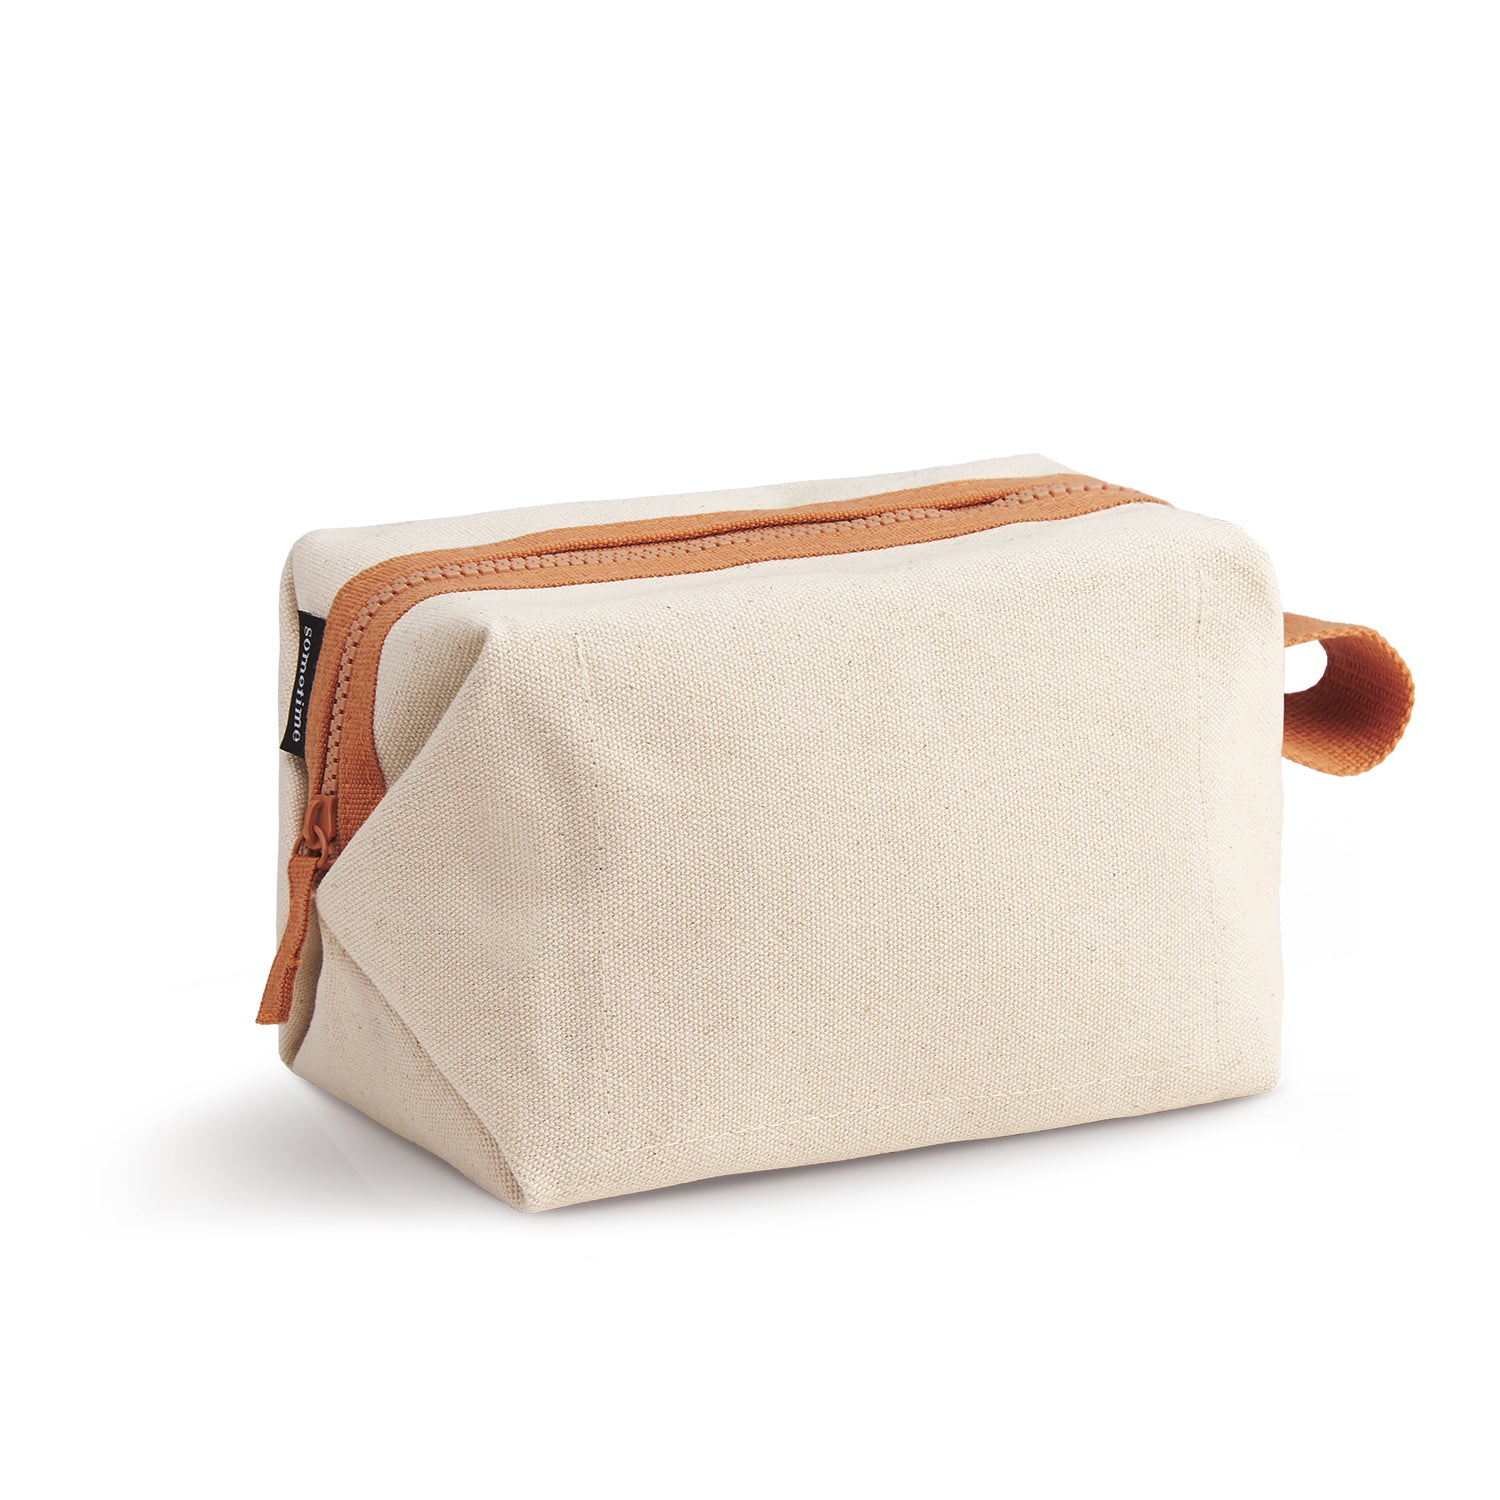 Espouch 2 - Beige/Nude Brown